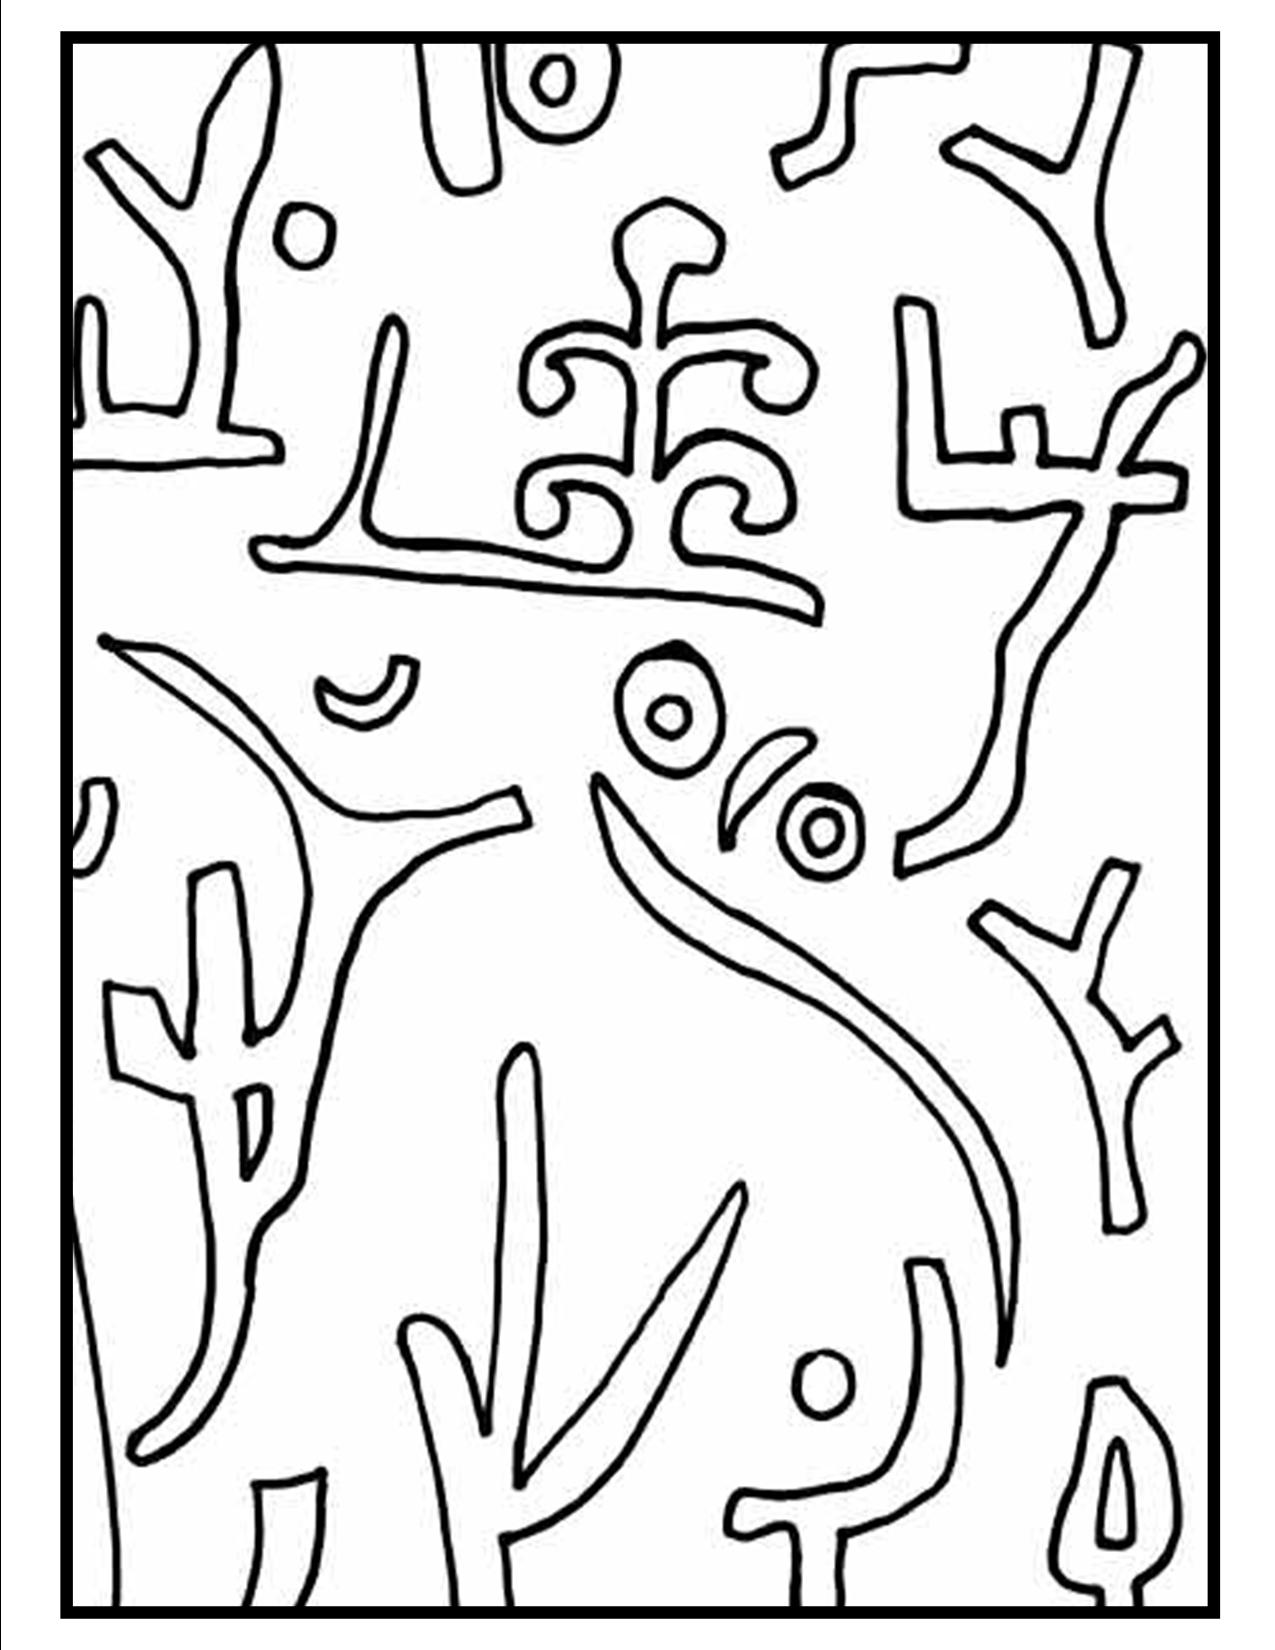 1275x1650 This Is A Picture Of The Coloring Page For Paul Klee's Park